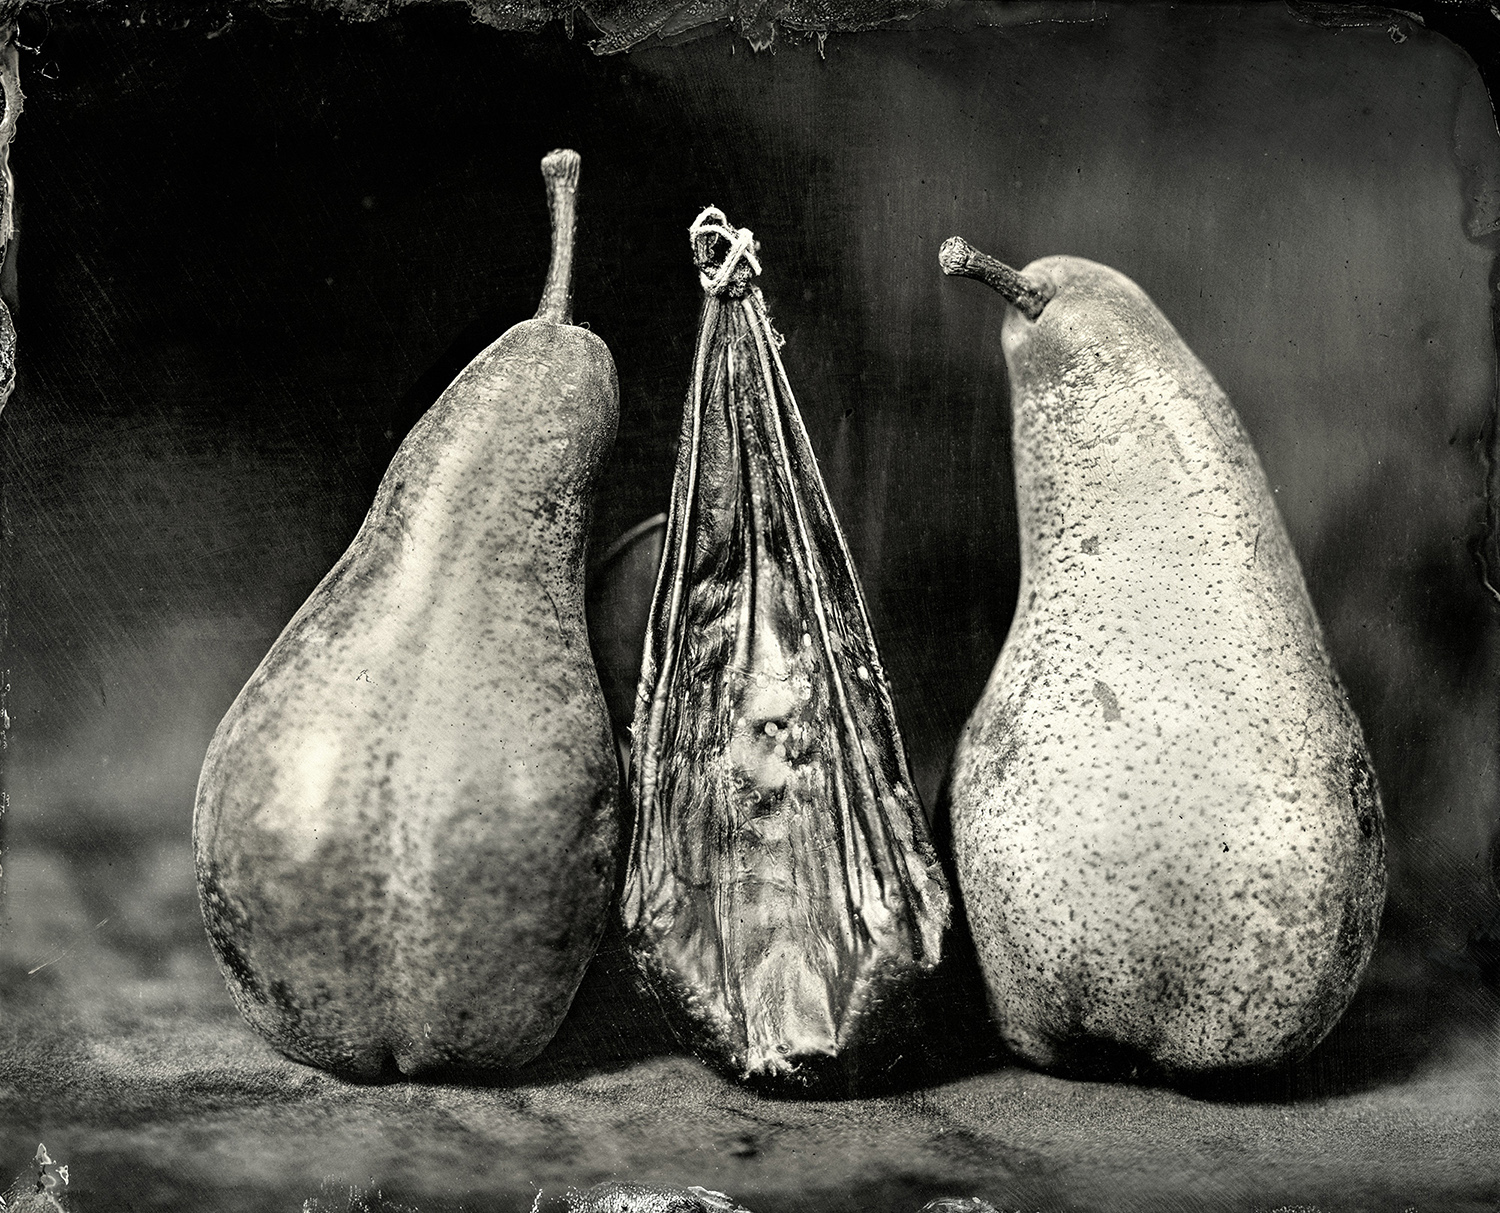 Bear Gallbladder with Bosc Pears, 2018, 8x10 inch Tintype